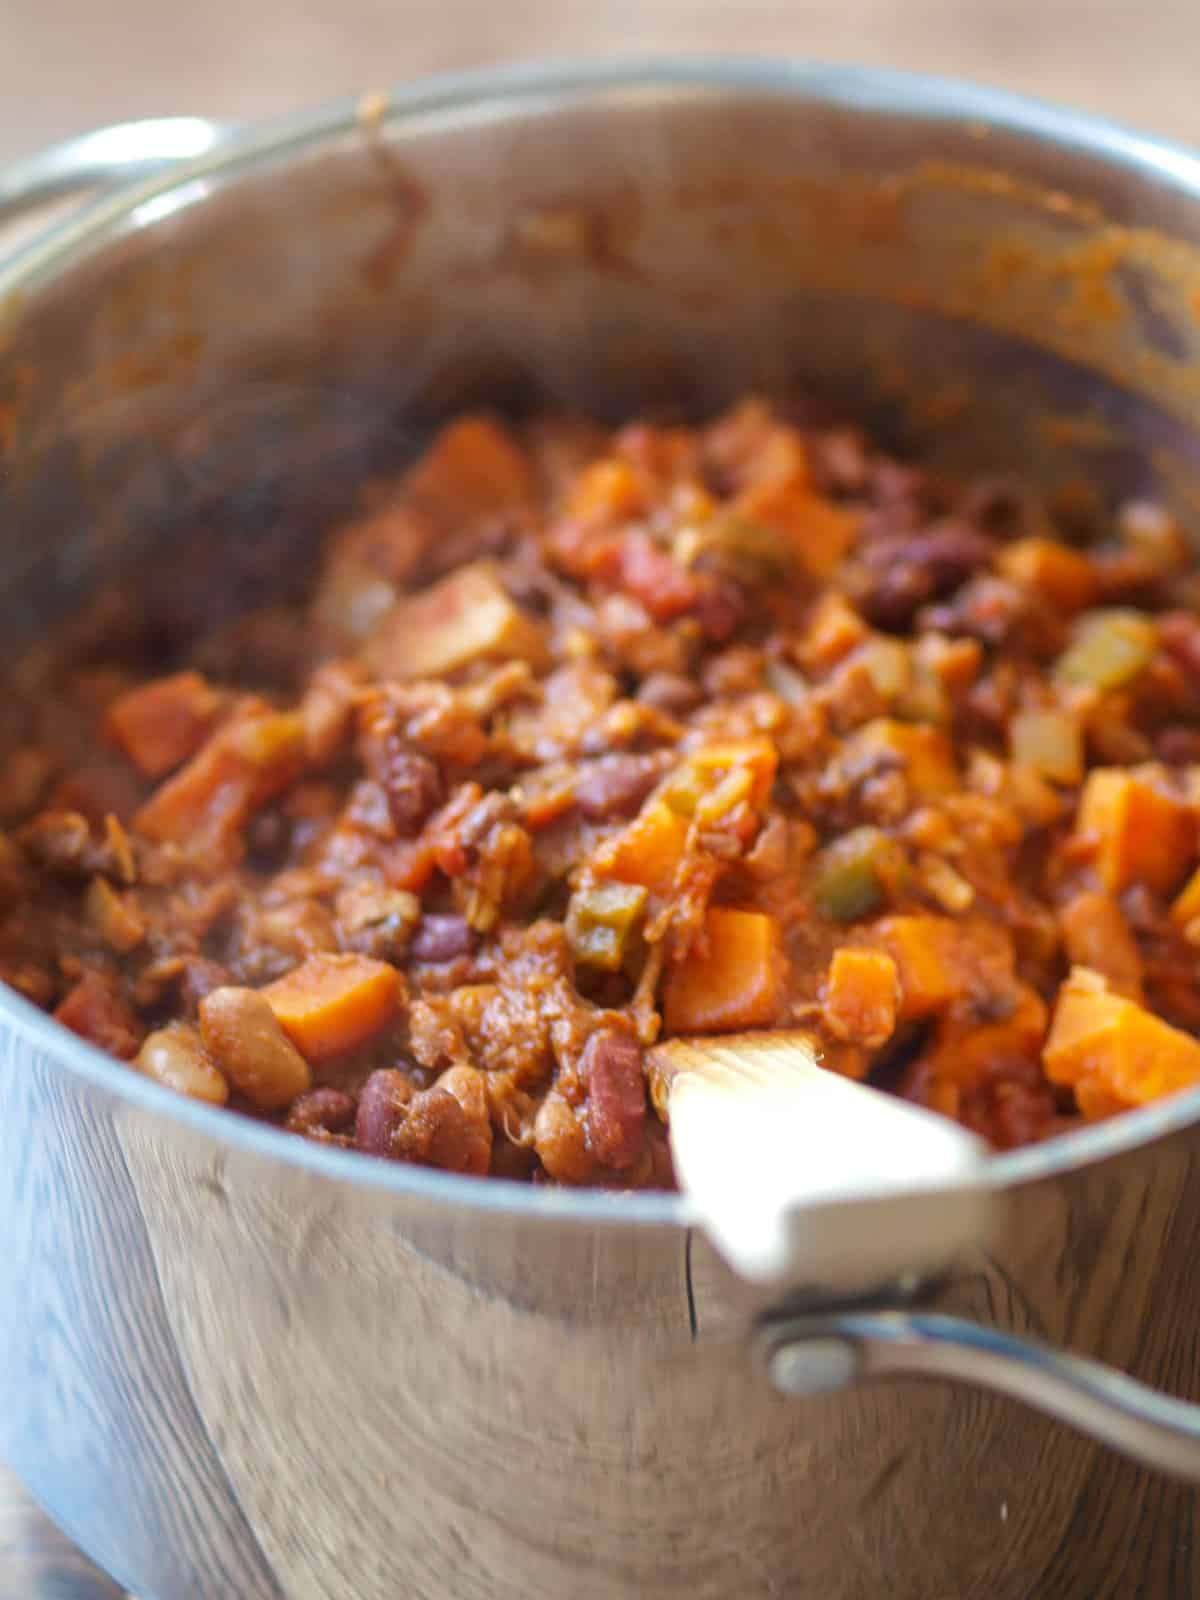 A large, steaming pot of vegan chili.